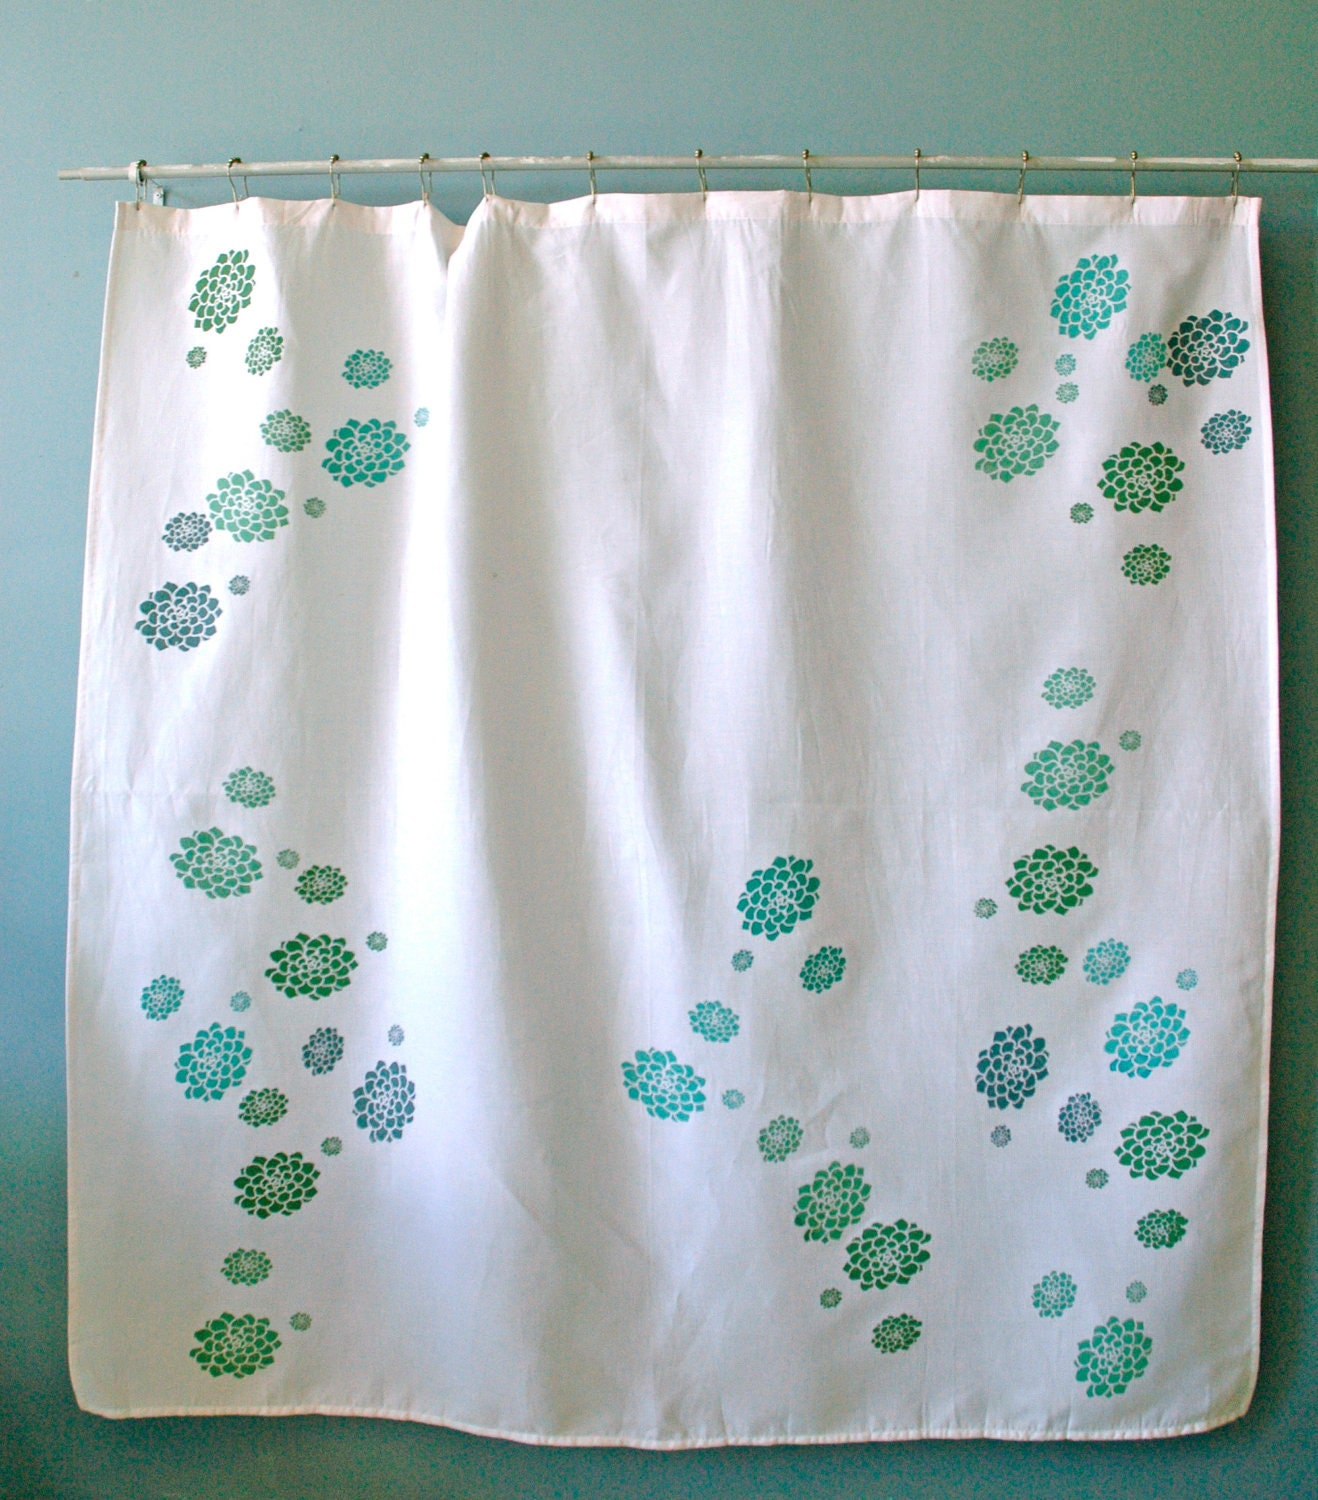 Teal And Green Shower Curtain Aqua Blue Shower Curtain